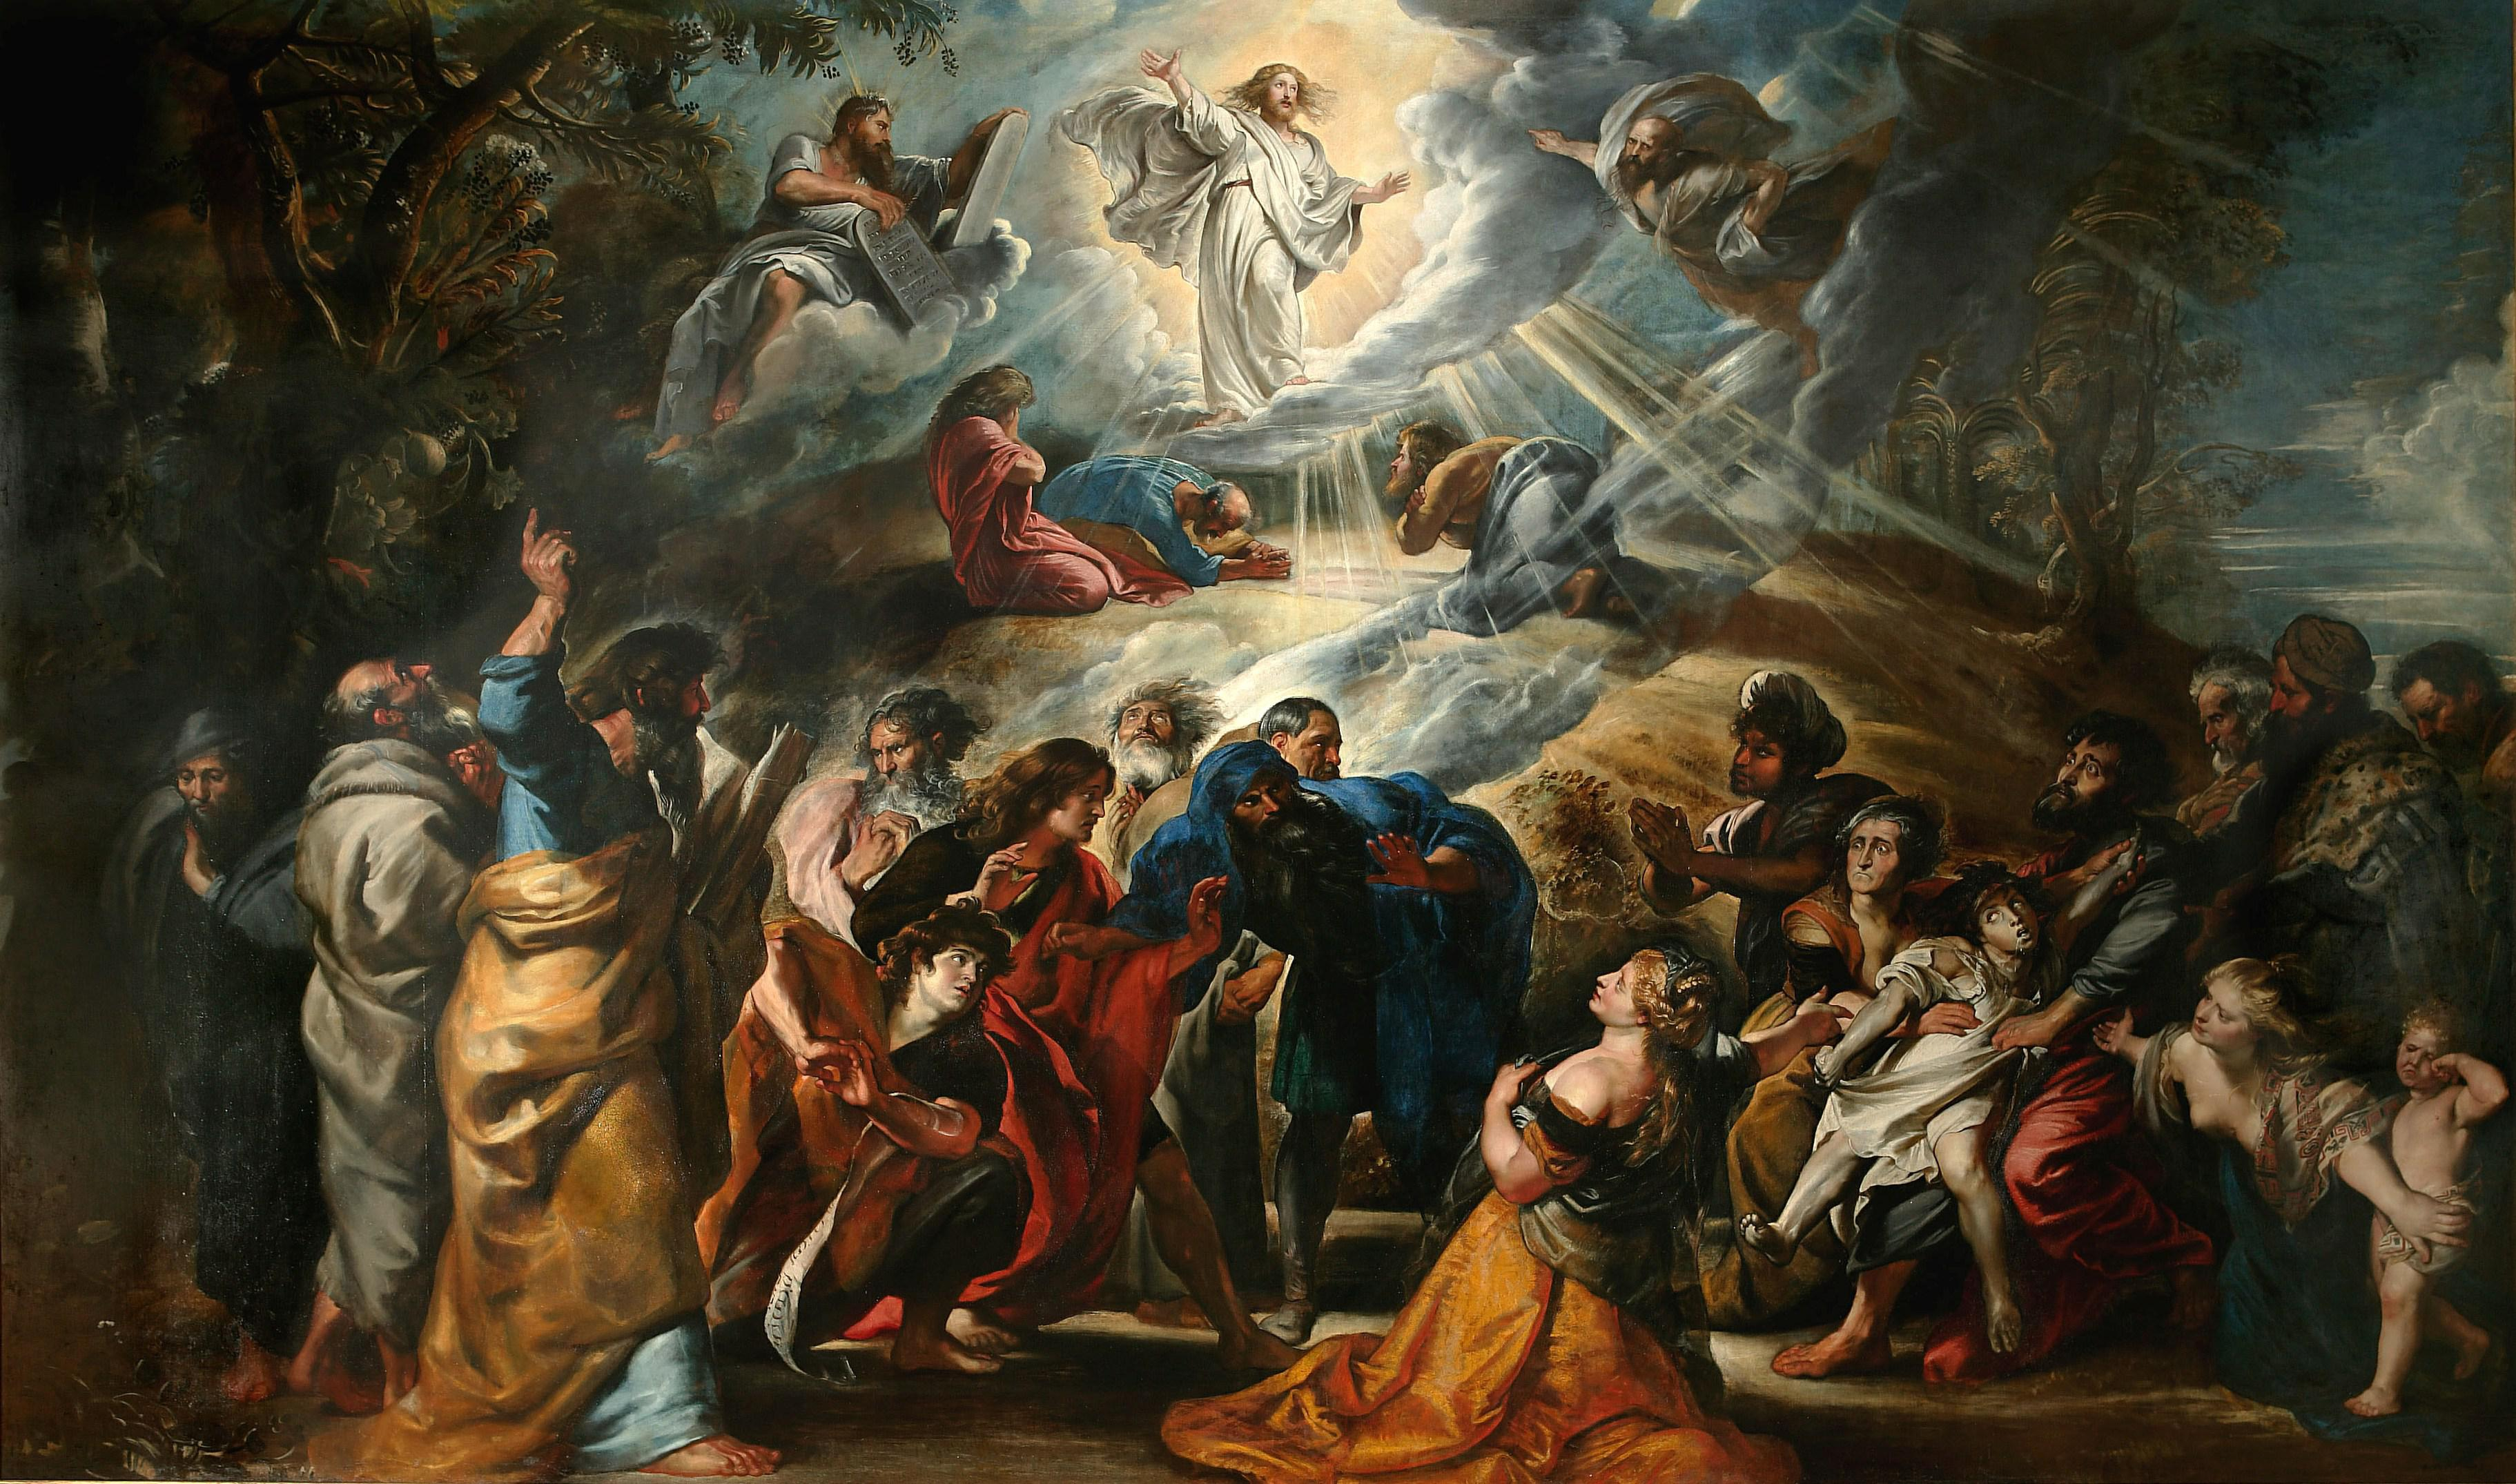 La Transfiguration (1605, Peter Paul RUBENS)